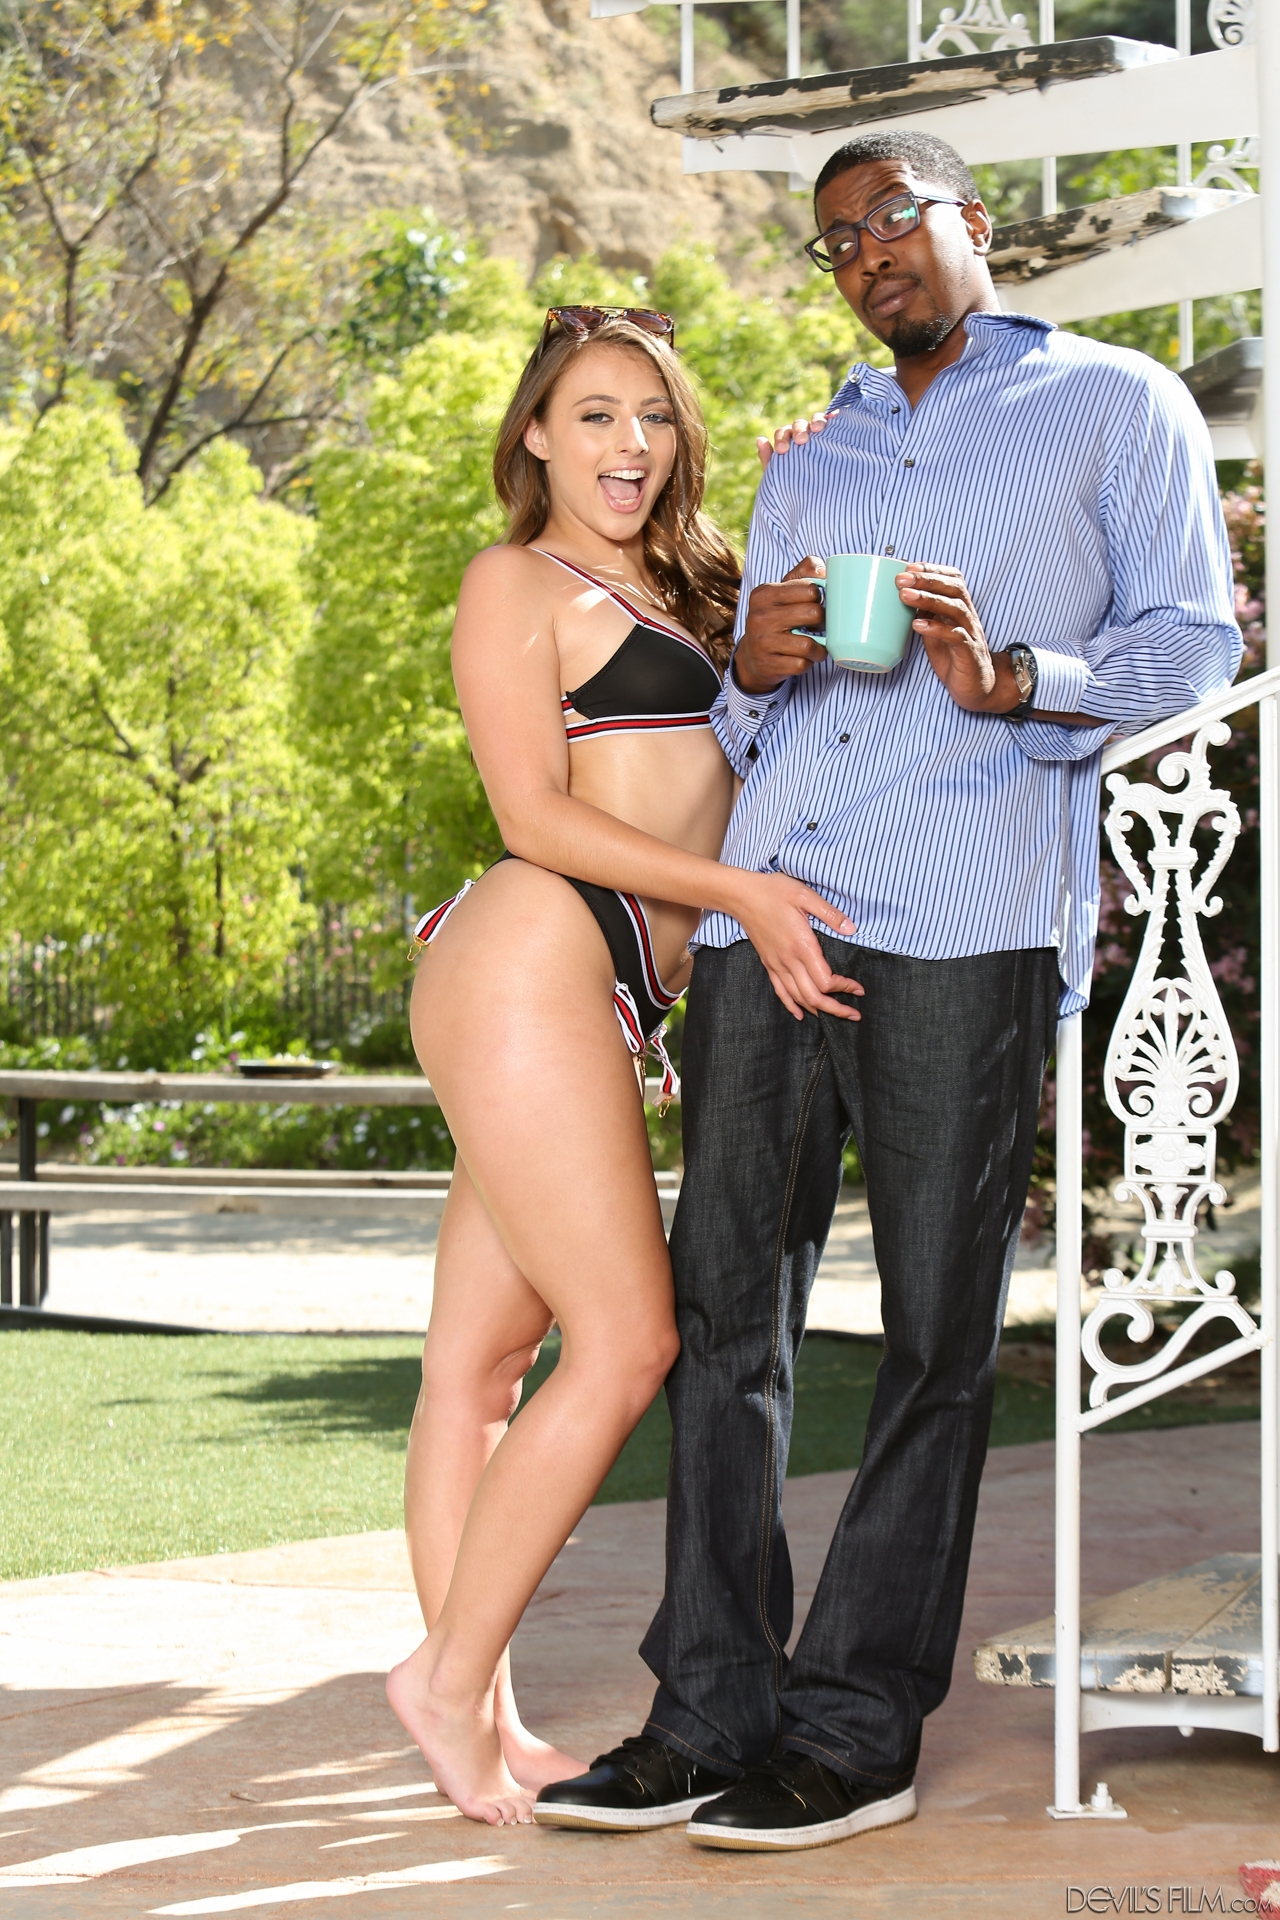 Gia Derza - My New Black Stepdaddy 23 - Devils Film 125810-4745